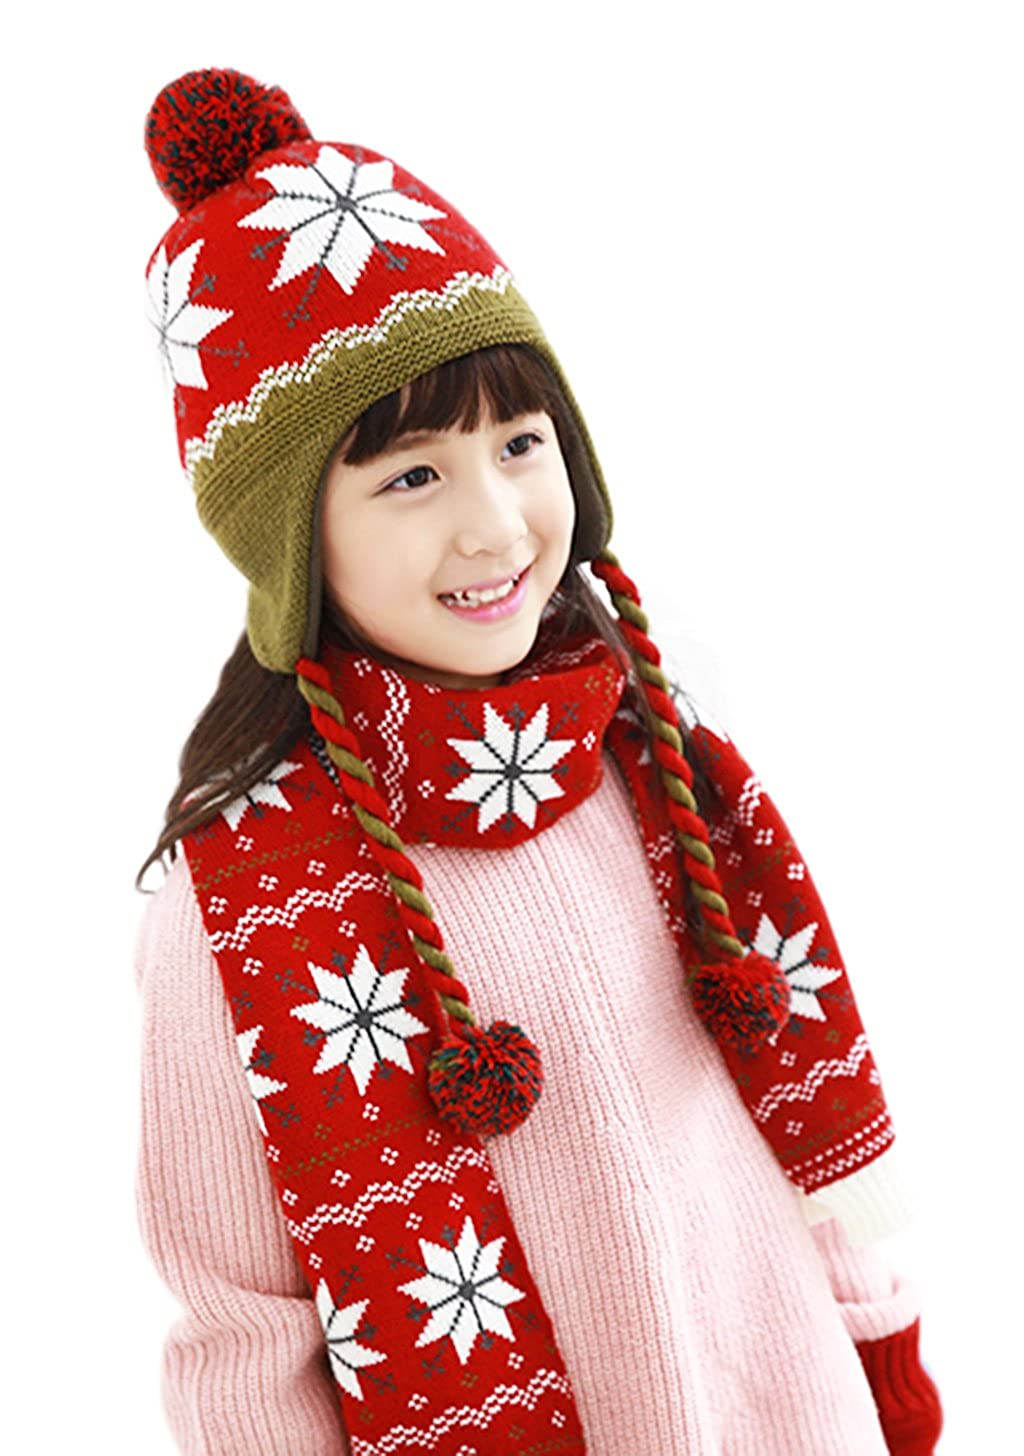 Unisex Kids Winter Warm 2 pcs Knitted Hat Scarf Set Snow Pattern Warm Fleece Lined Pompom Beanie Hat with Ear Flaps Long Scarf Neck Warmer Wrap Set for 3-10 Year Old Kids